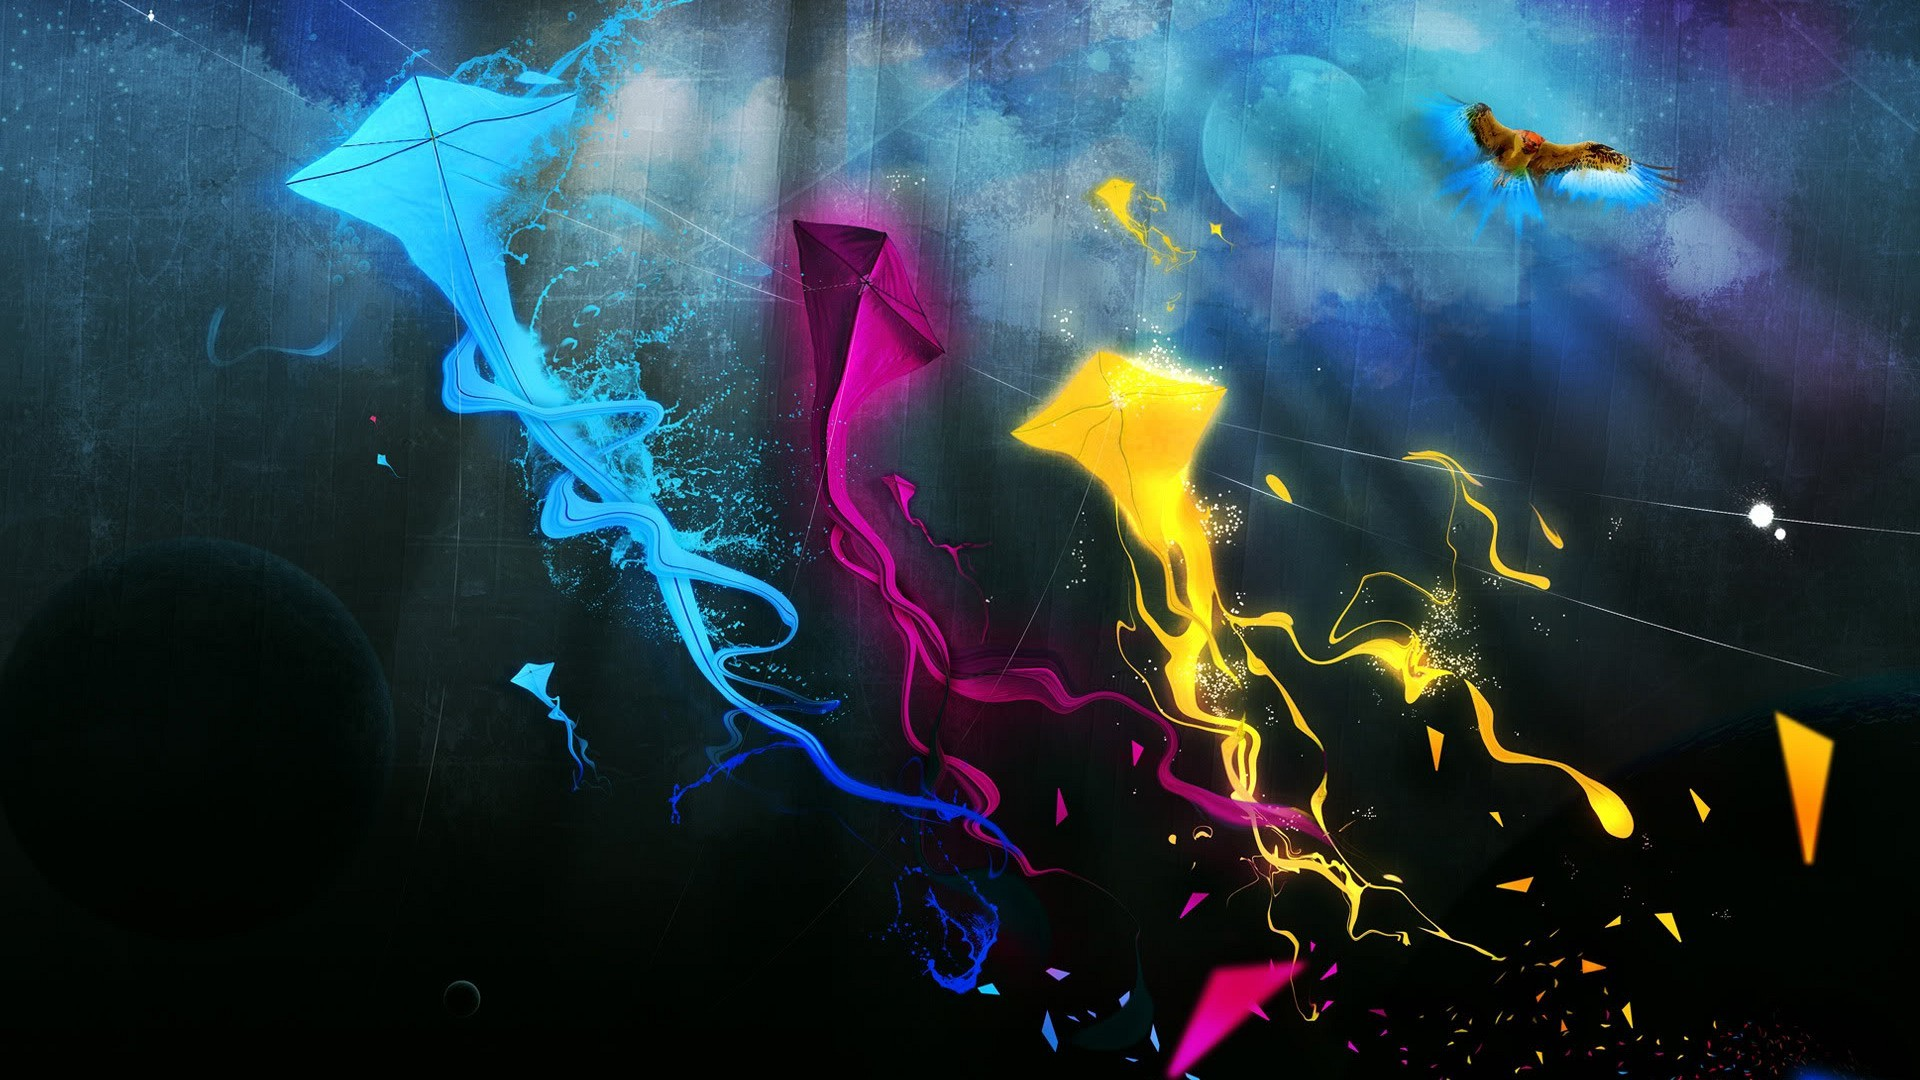 Hd Abstract 720p Hd 3d Wallpaper 1080p #7801 Hd Wallpapers Background .